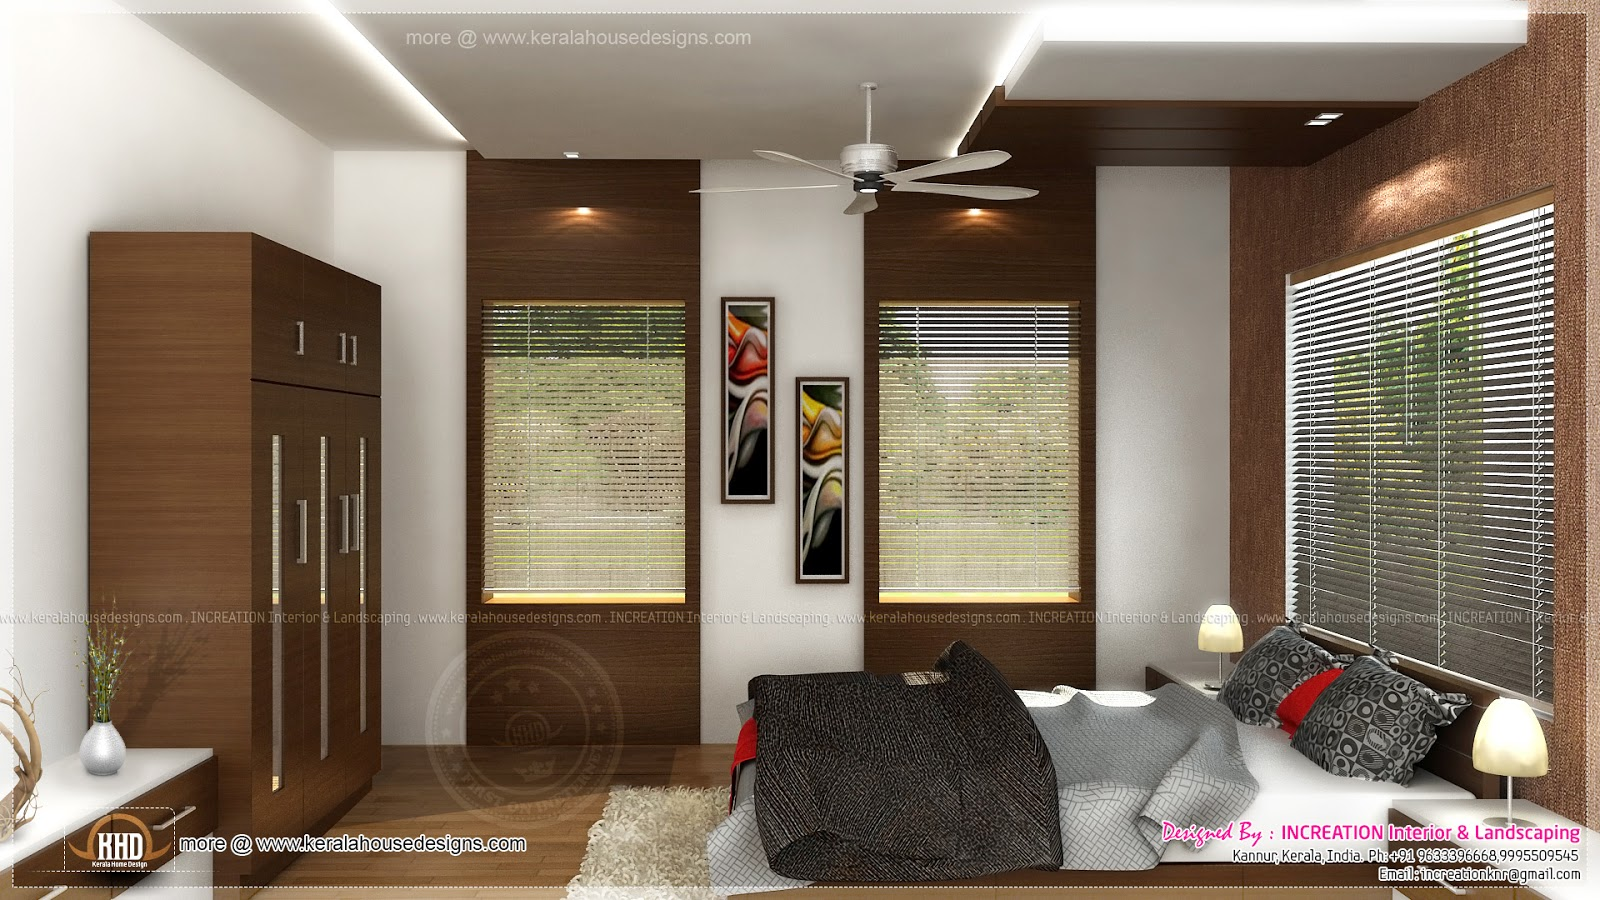 interior designs from kannur kerala